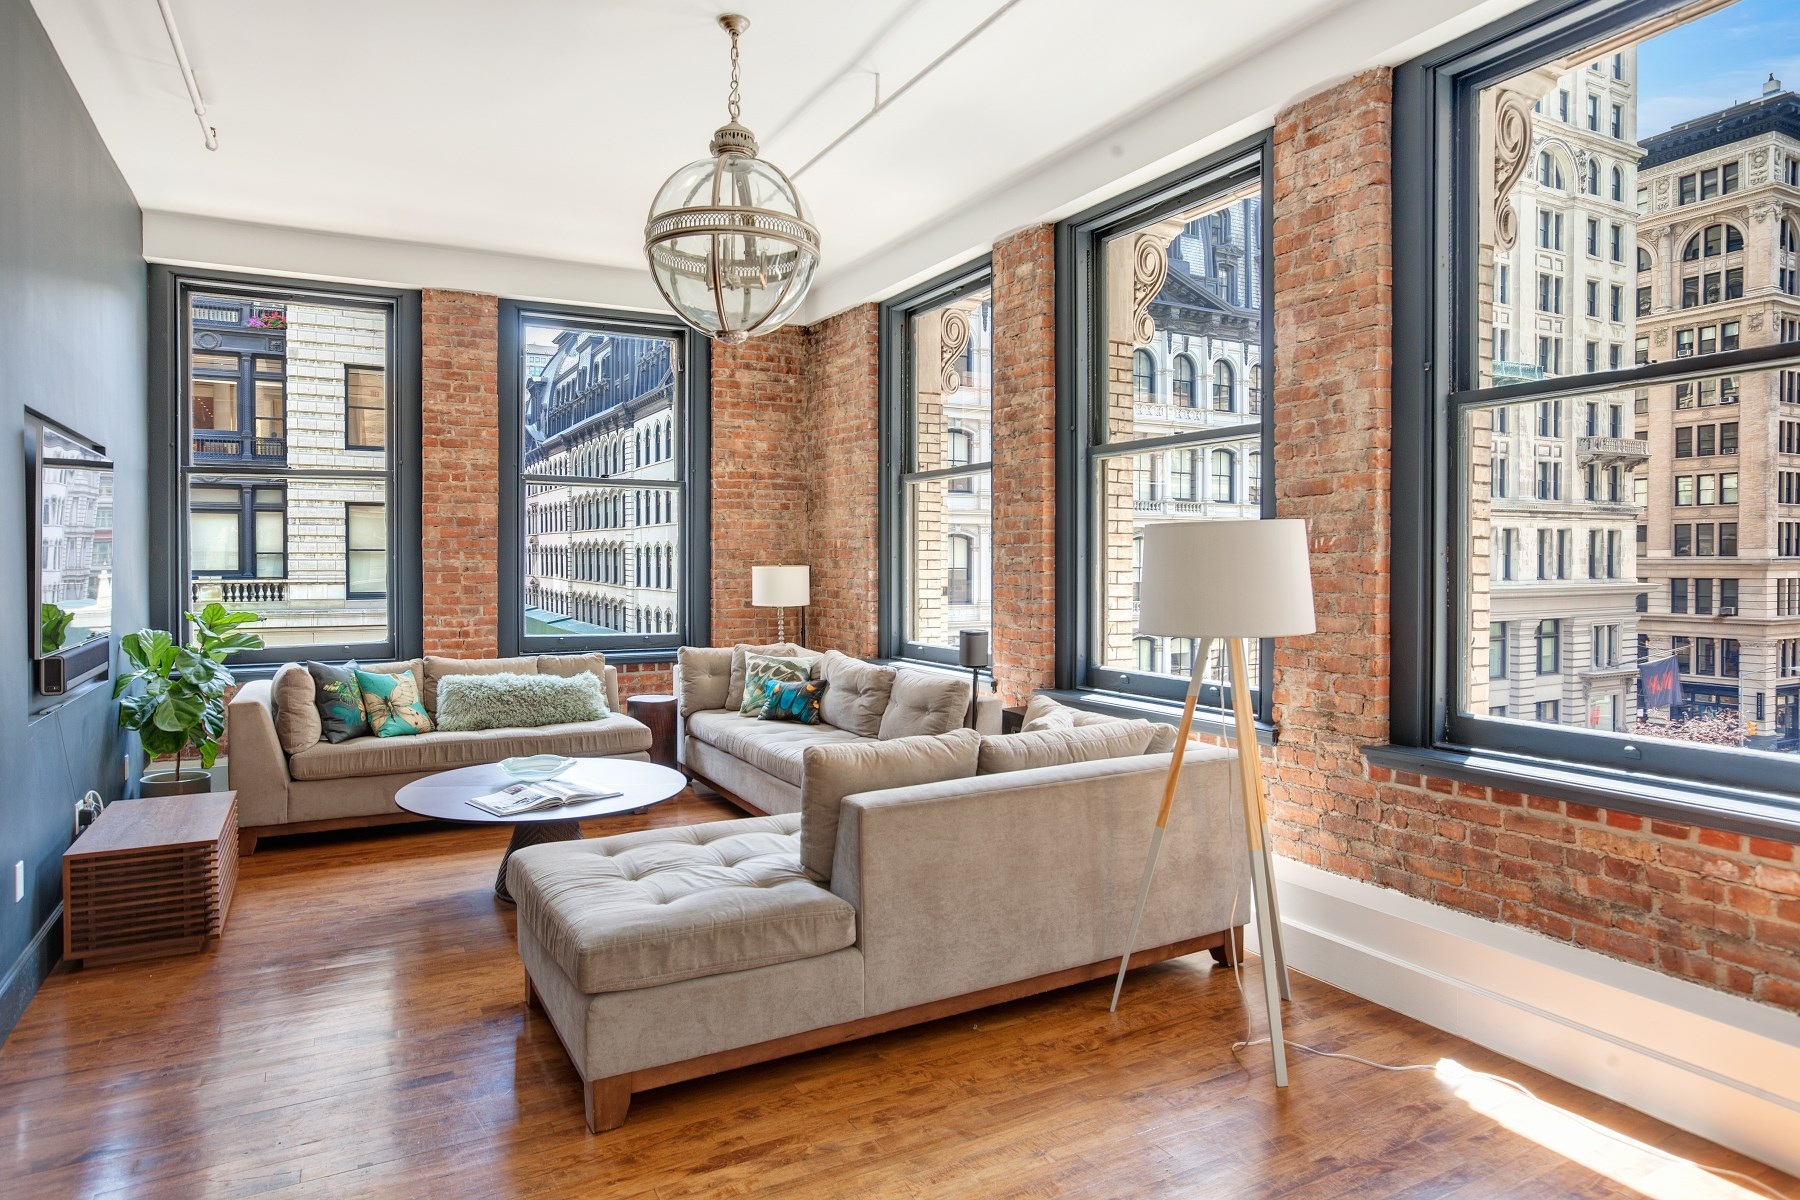 Co-op for Sale at Flatiron Fifth Avenue Loft New York, New York, 10011 United States